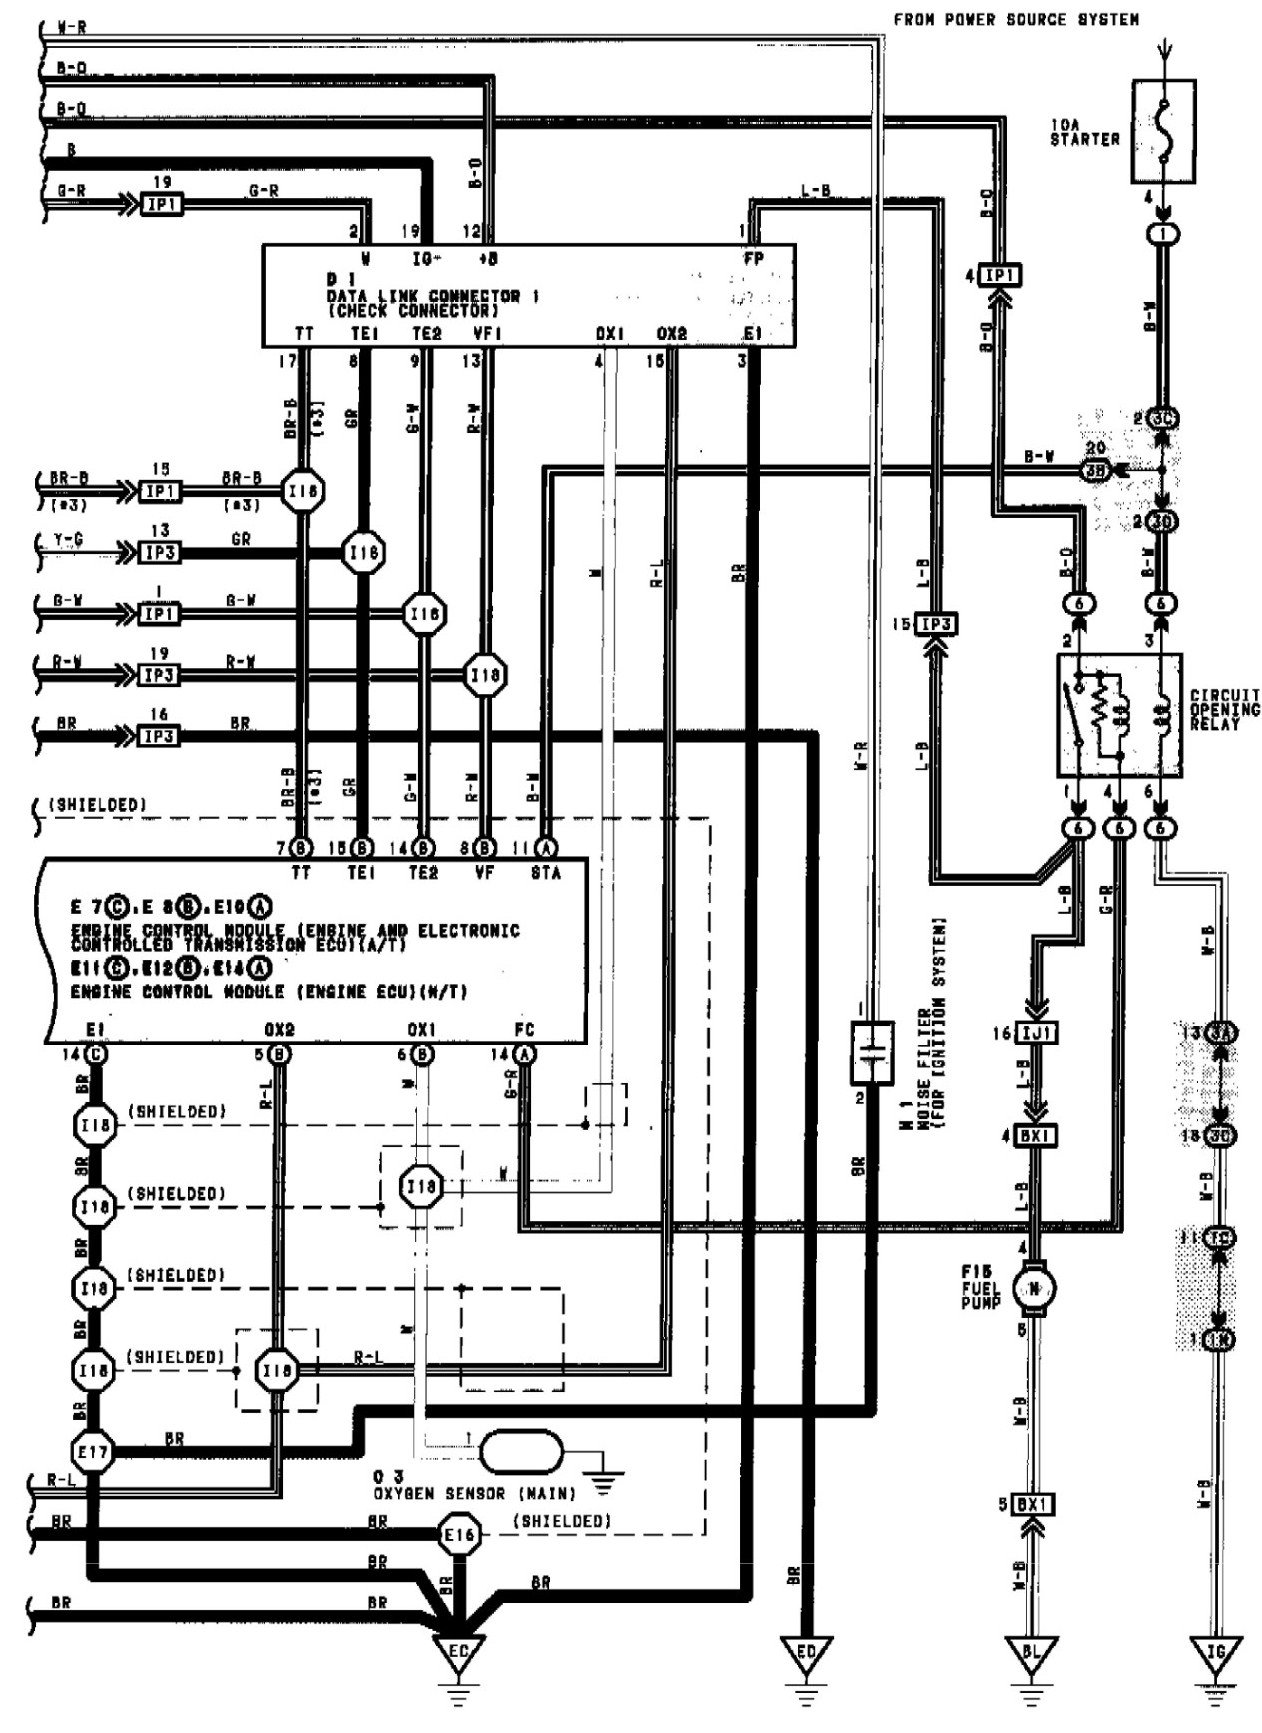 2003 Toyota Sequoiaelectrical Wiring Diagraham from ww2.justanswer.com